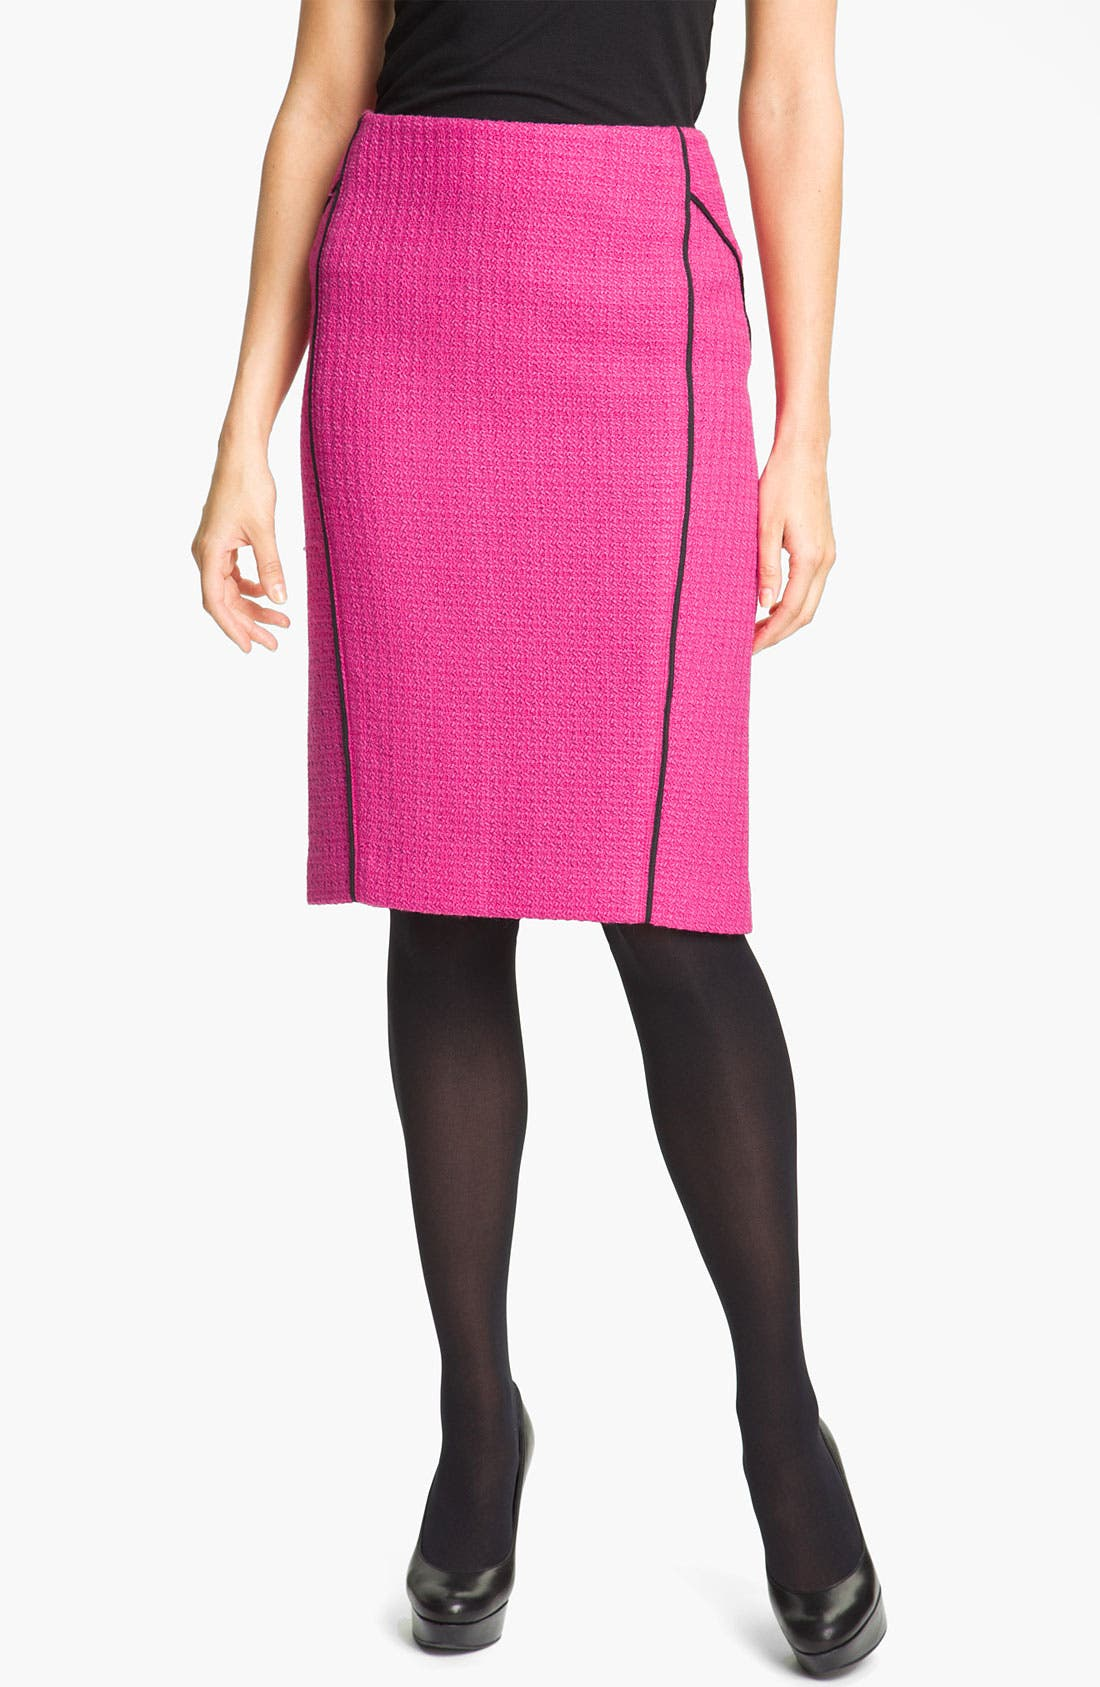 Alternate Image 1 Selected - Lafayette 148 New York 'Lilith Abbey Tweed' Skirt